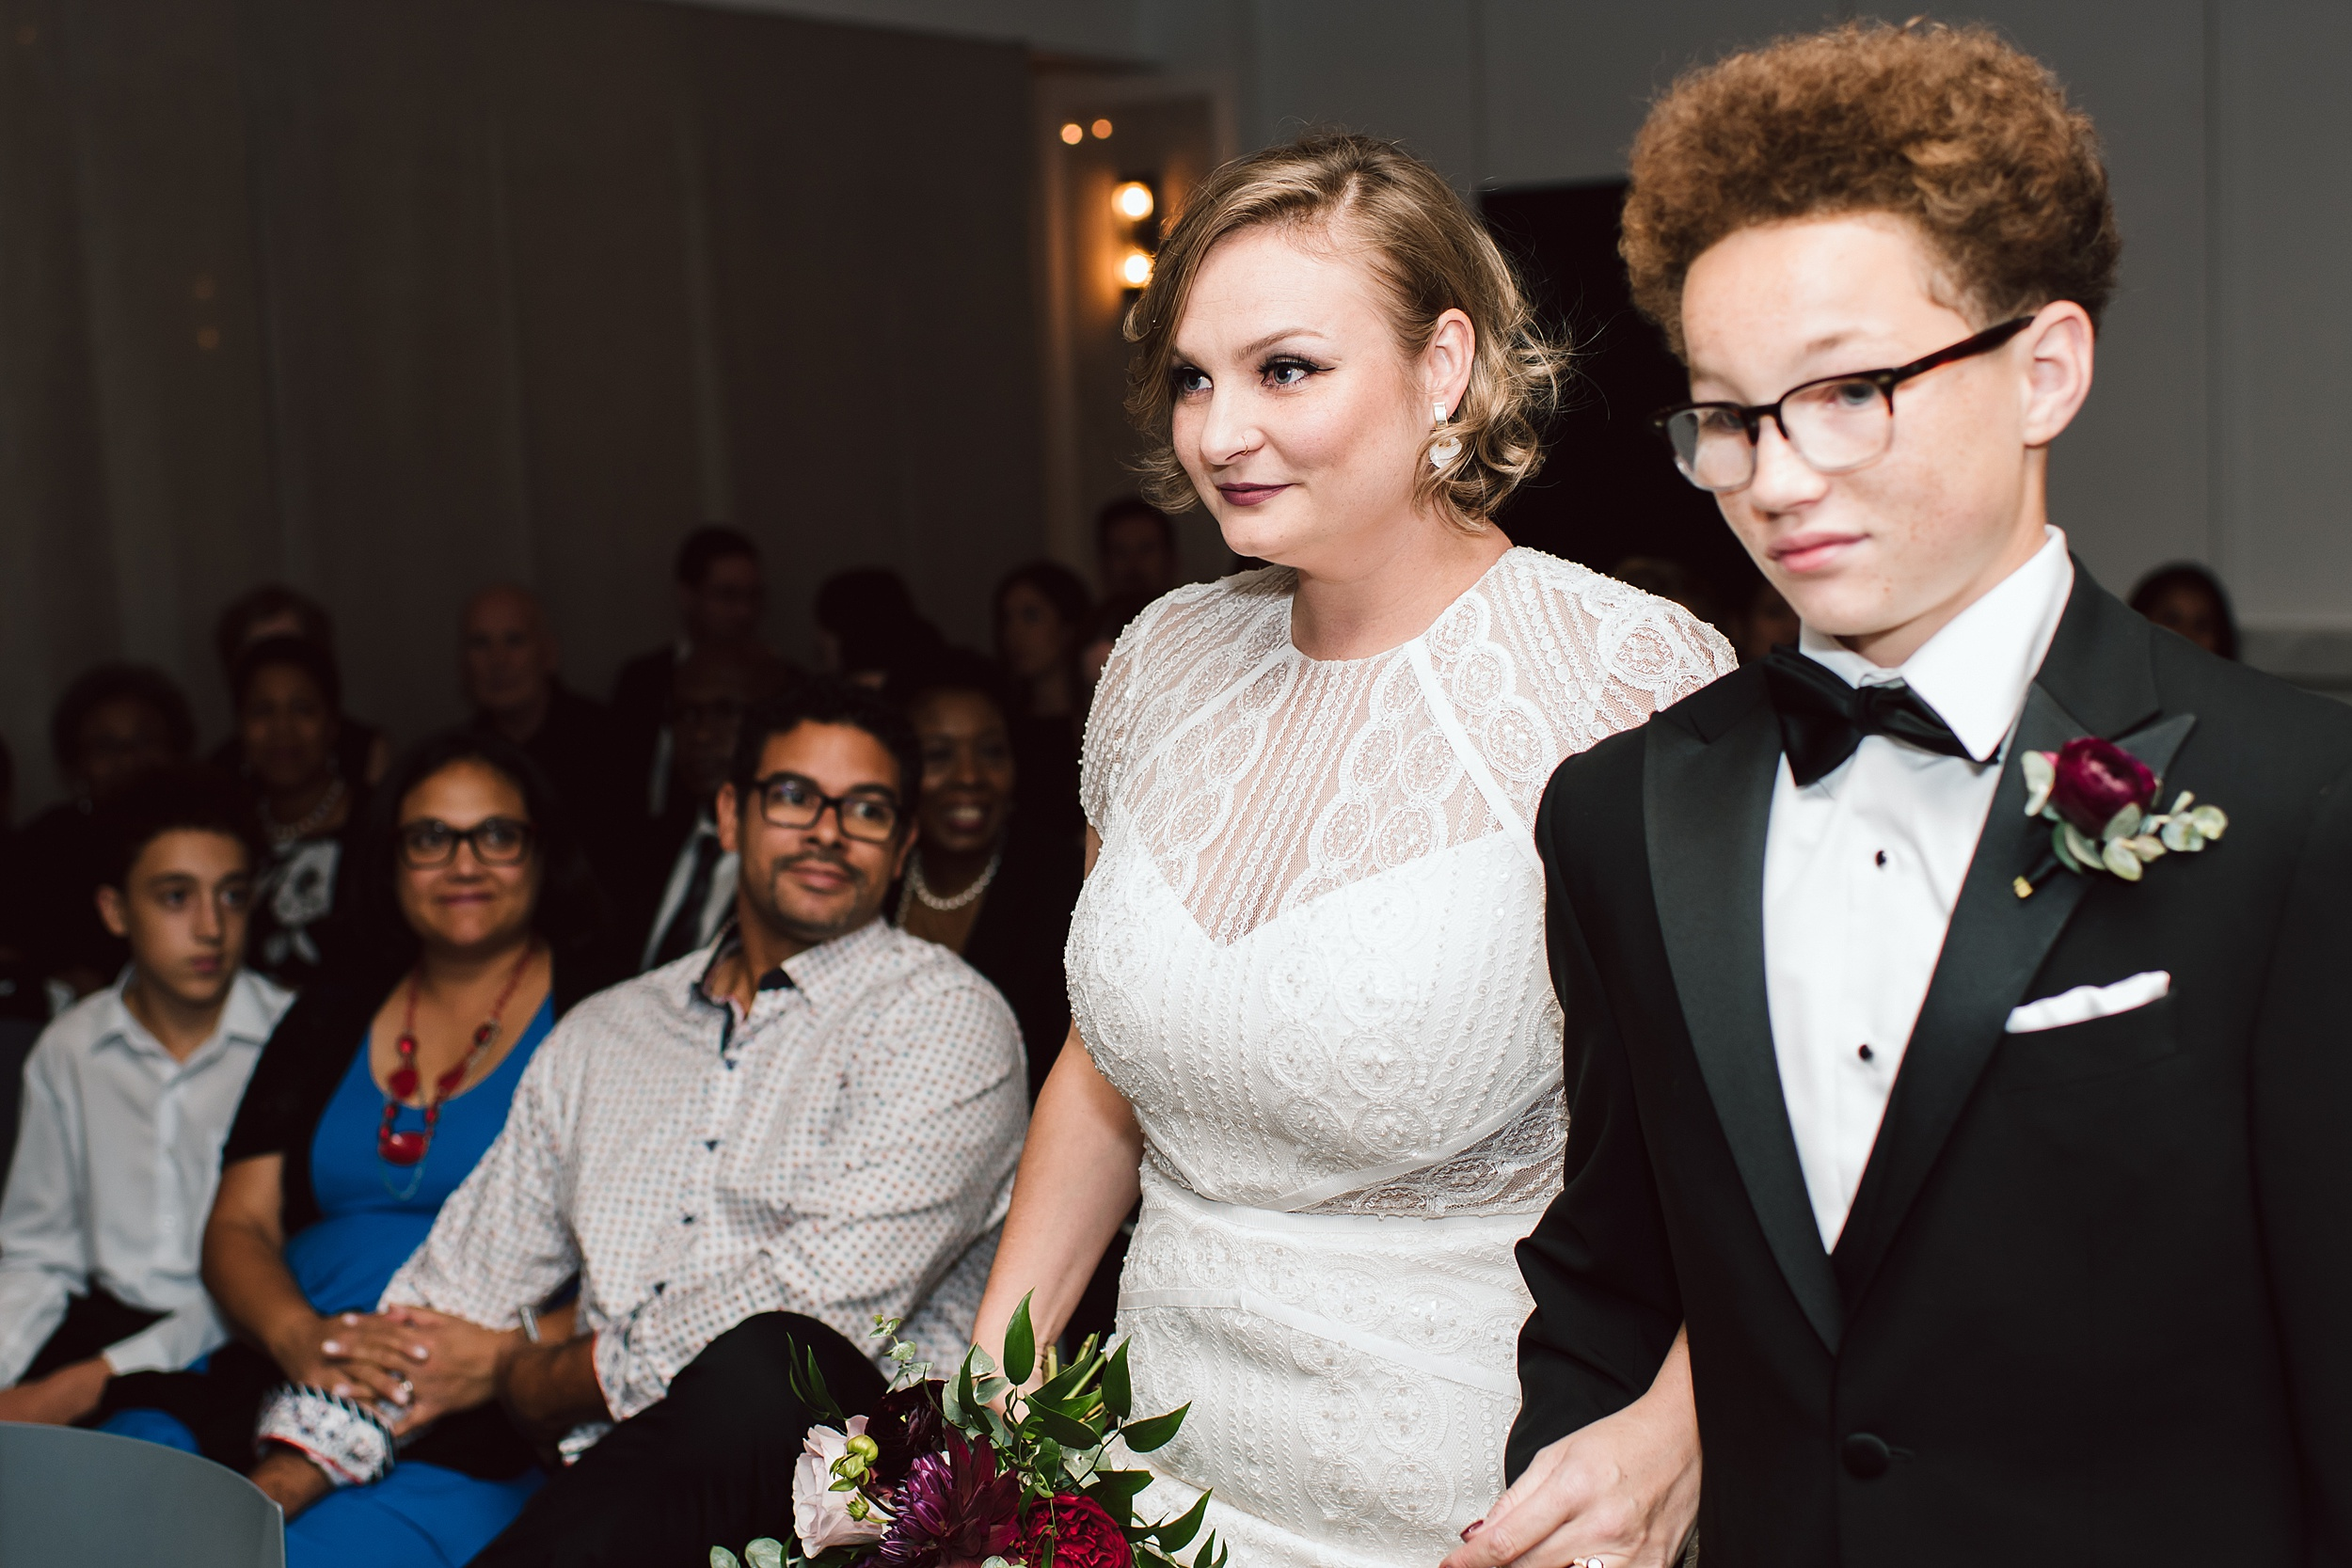 Broadview_Hotel_Wedding_Toronto_Photographer_0017.jpg